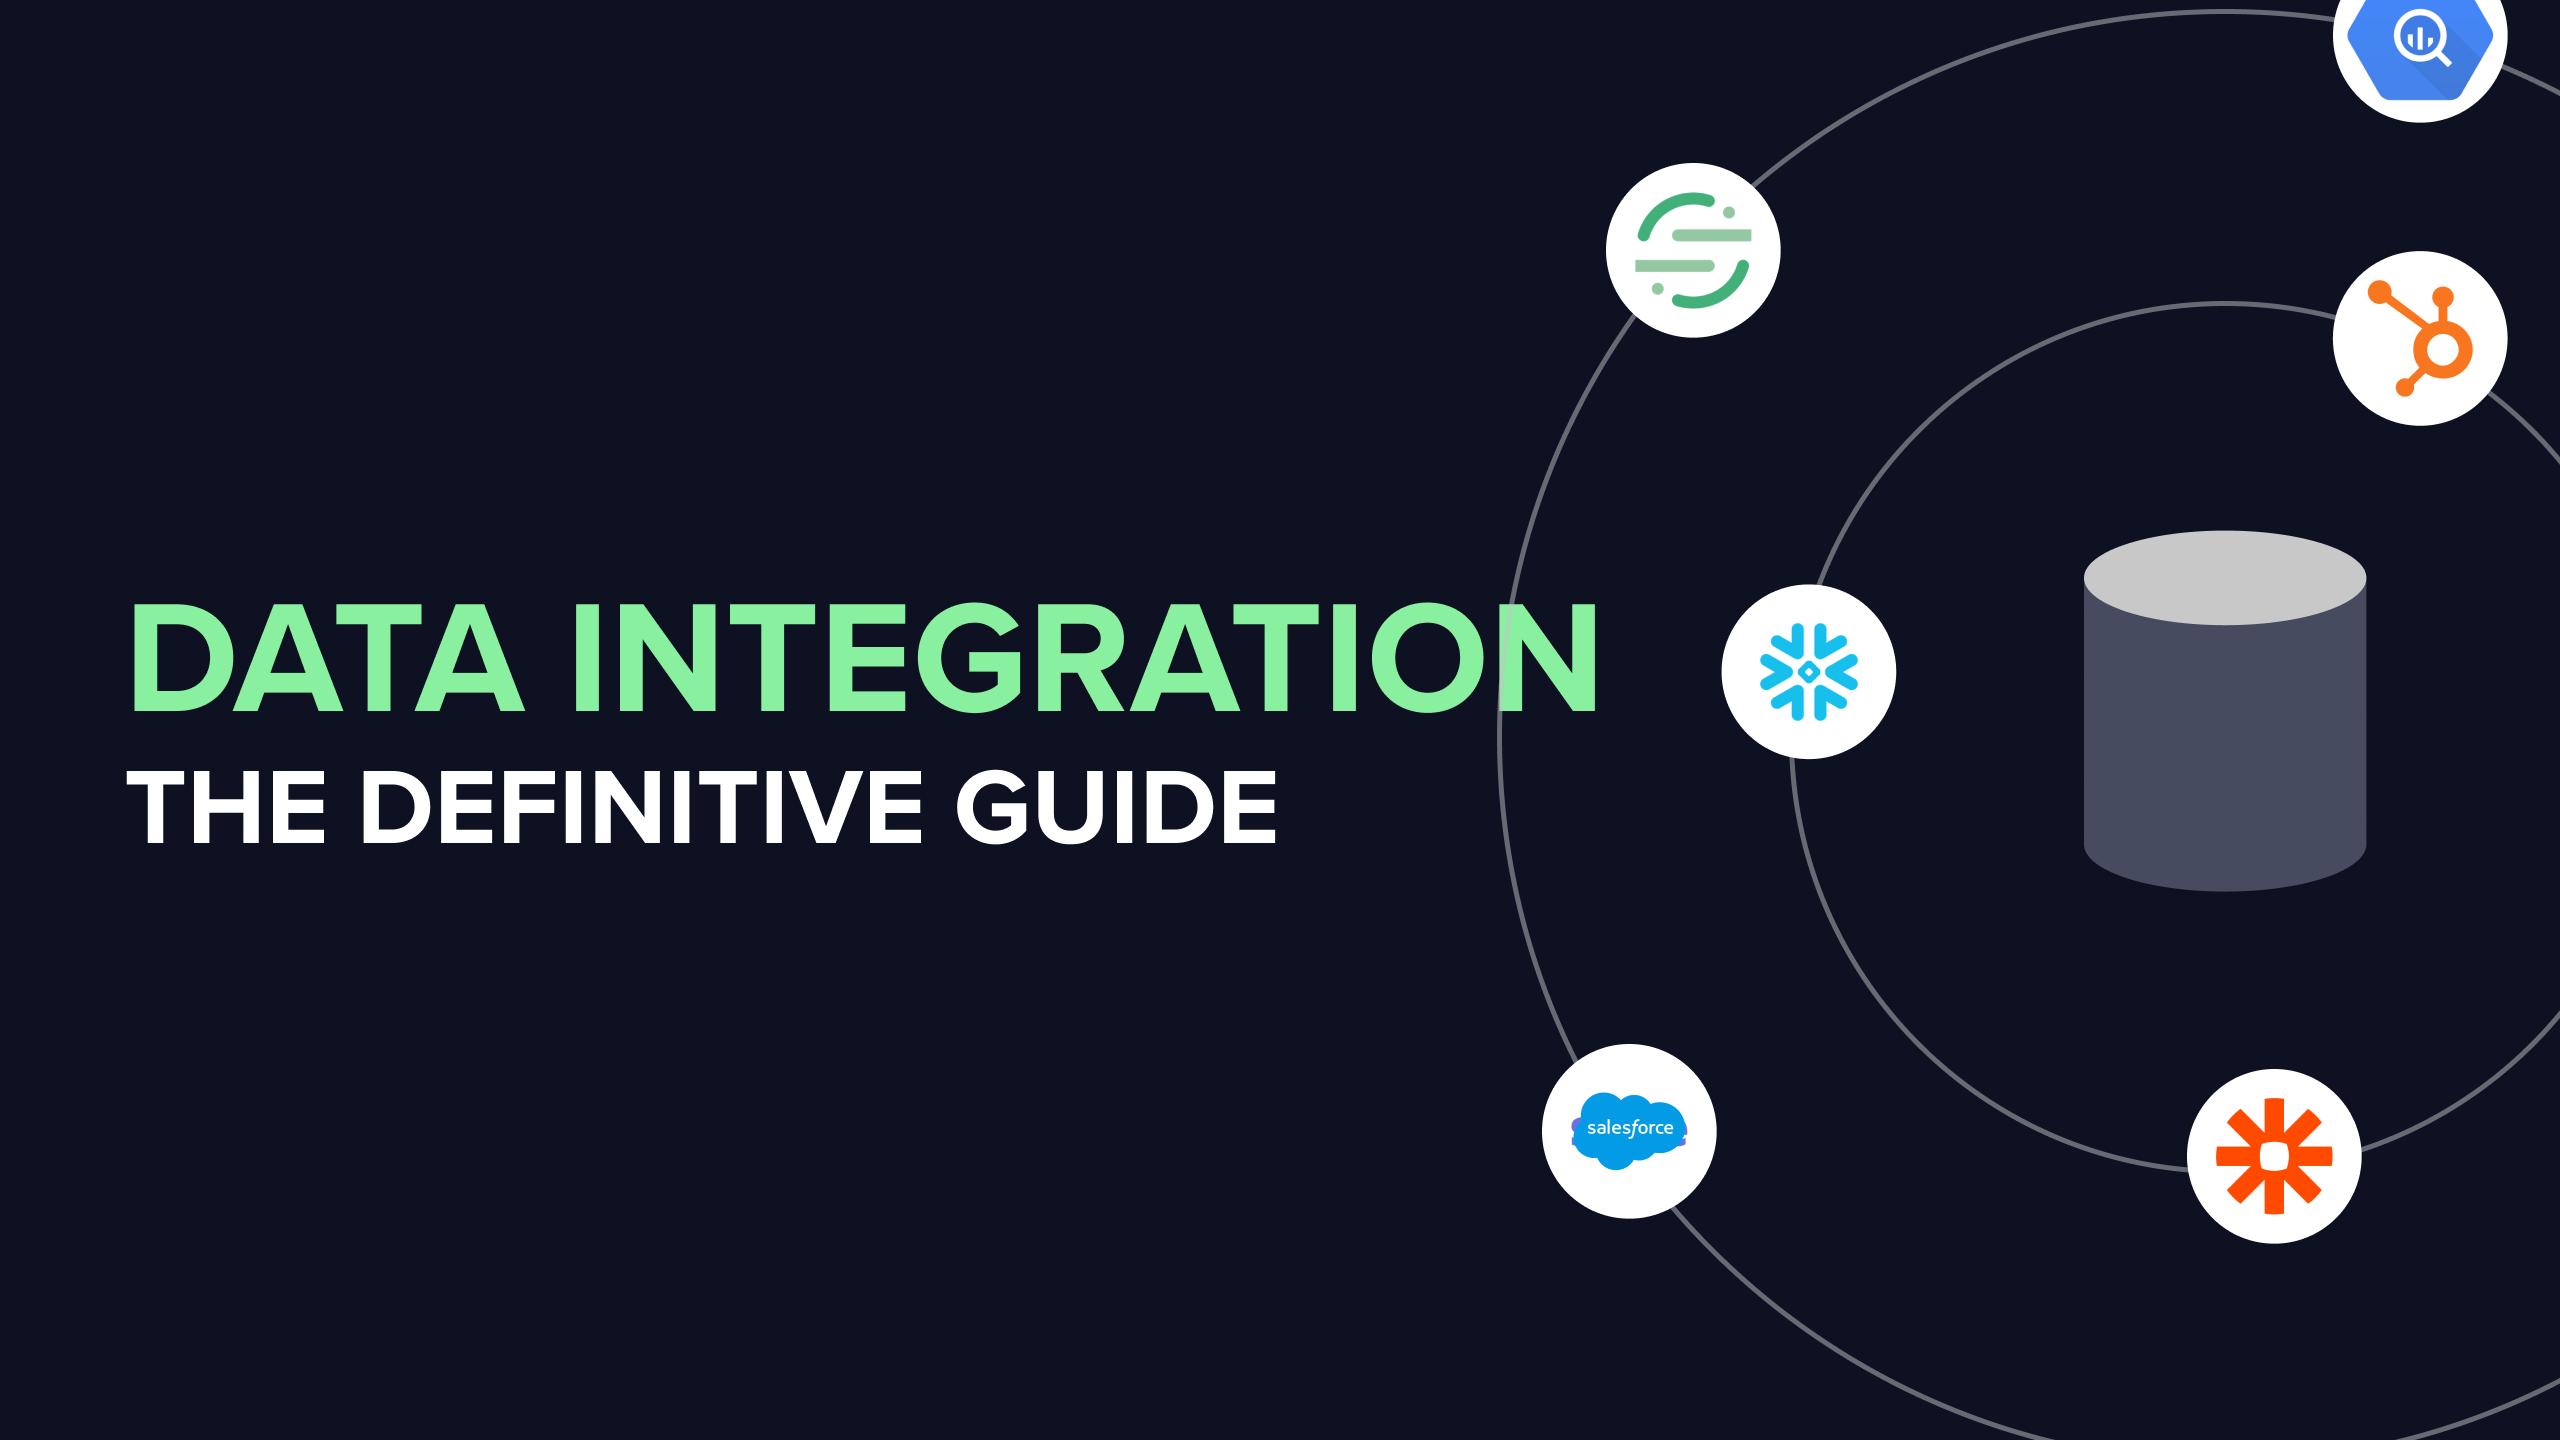 Data Integration: The Definitive Guide